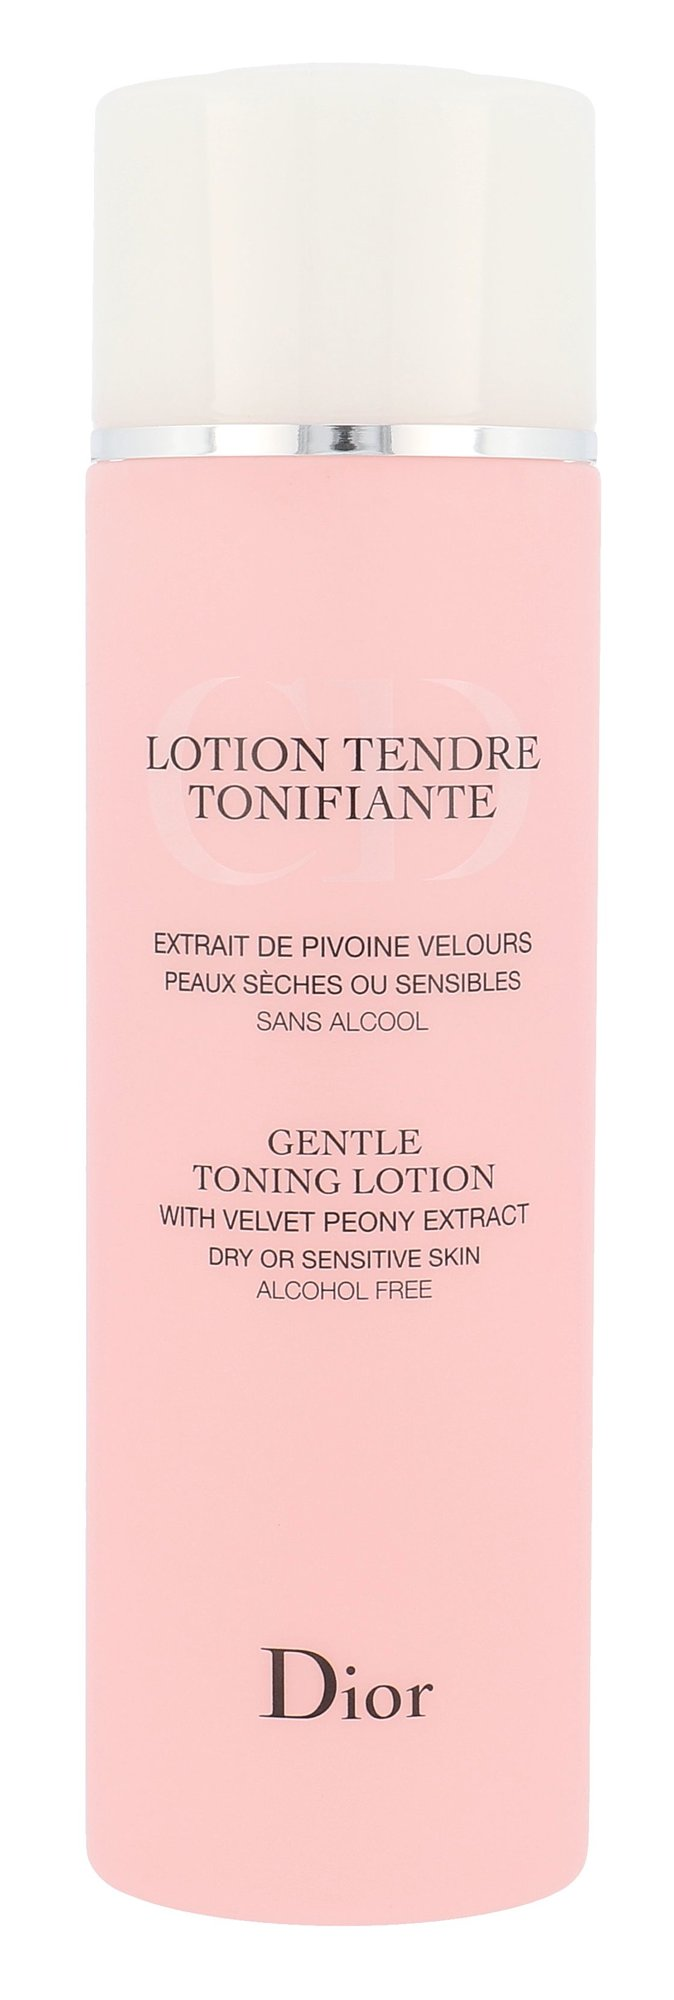 Christian Dior Gentle Toning Lotion Cosmetic 200ml